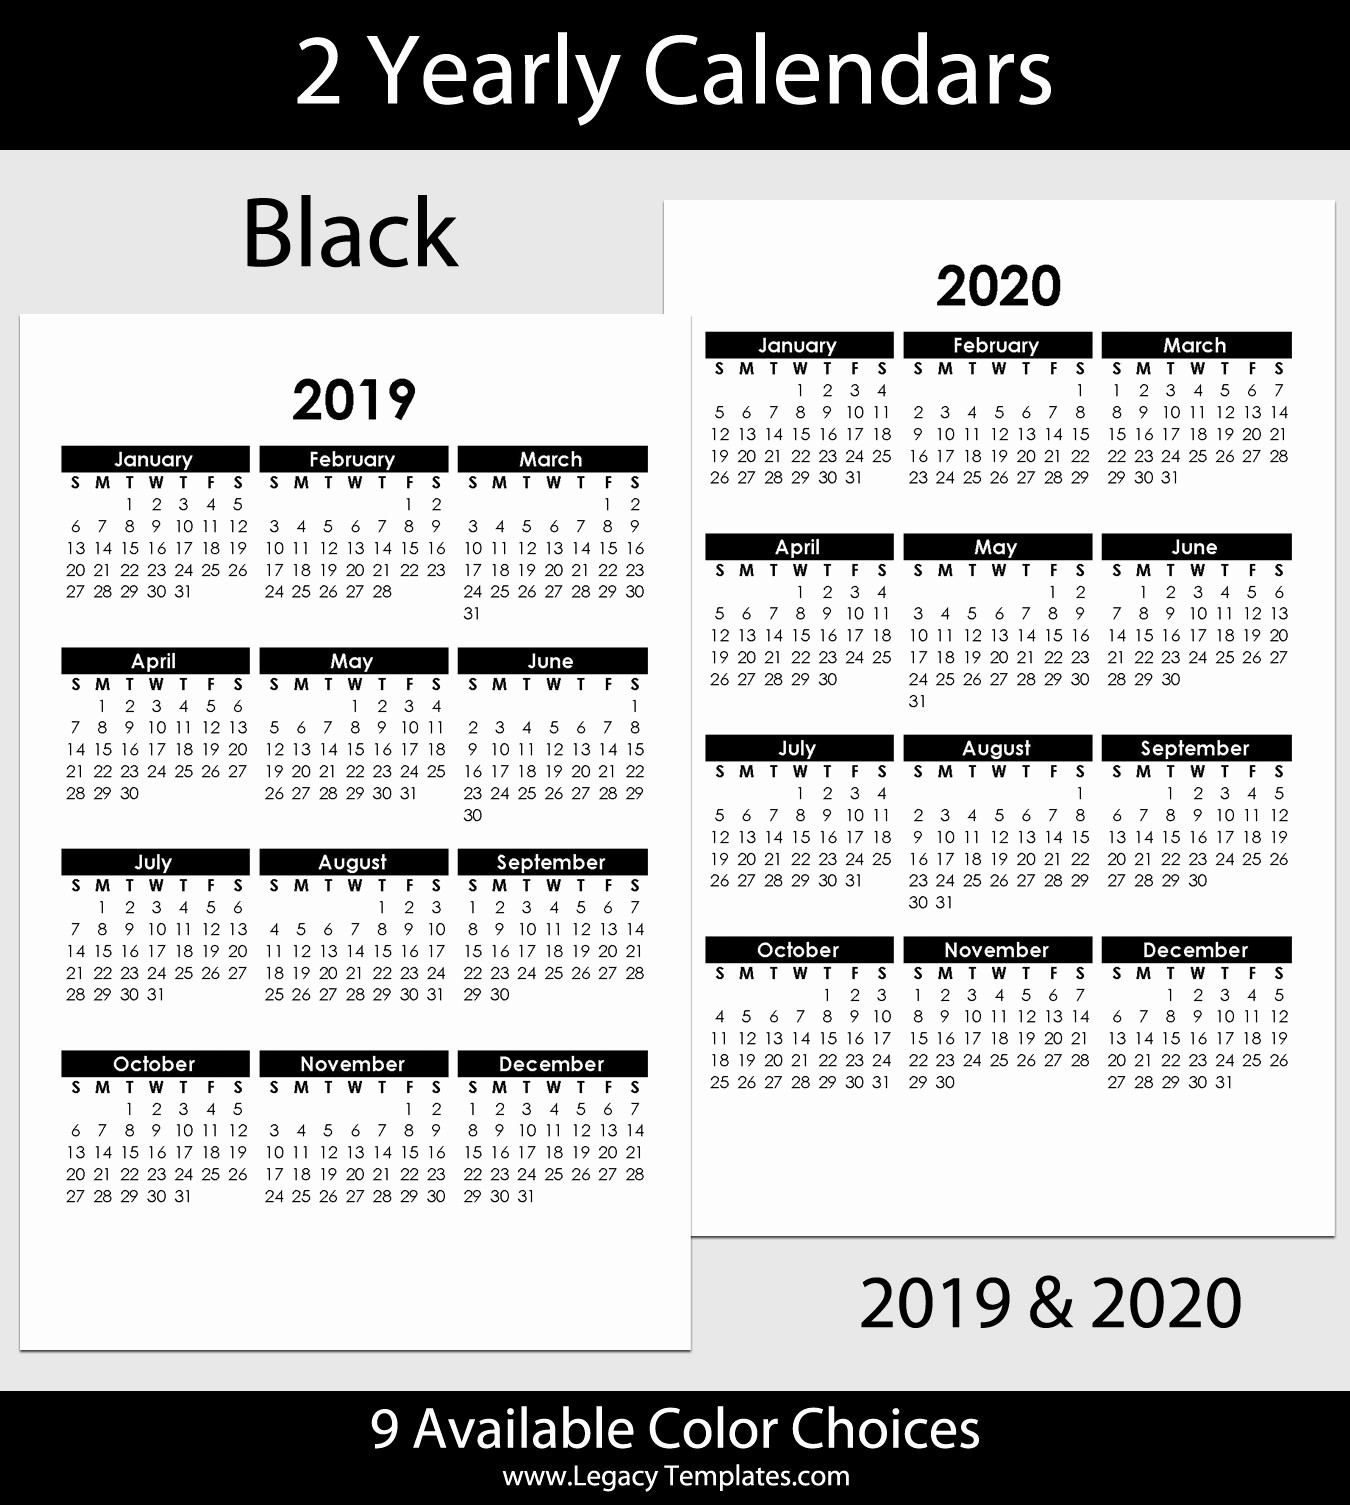 2019 and 2020 Calendar Printable Luxury 2019 & 2020 Yearly Calendar – 5 5 X 8 5